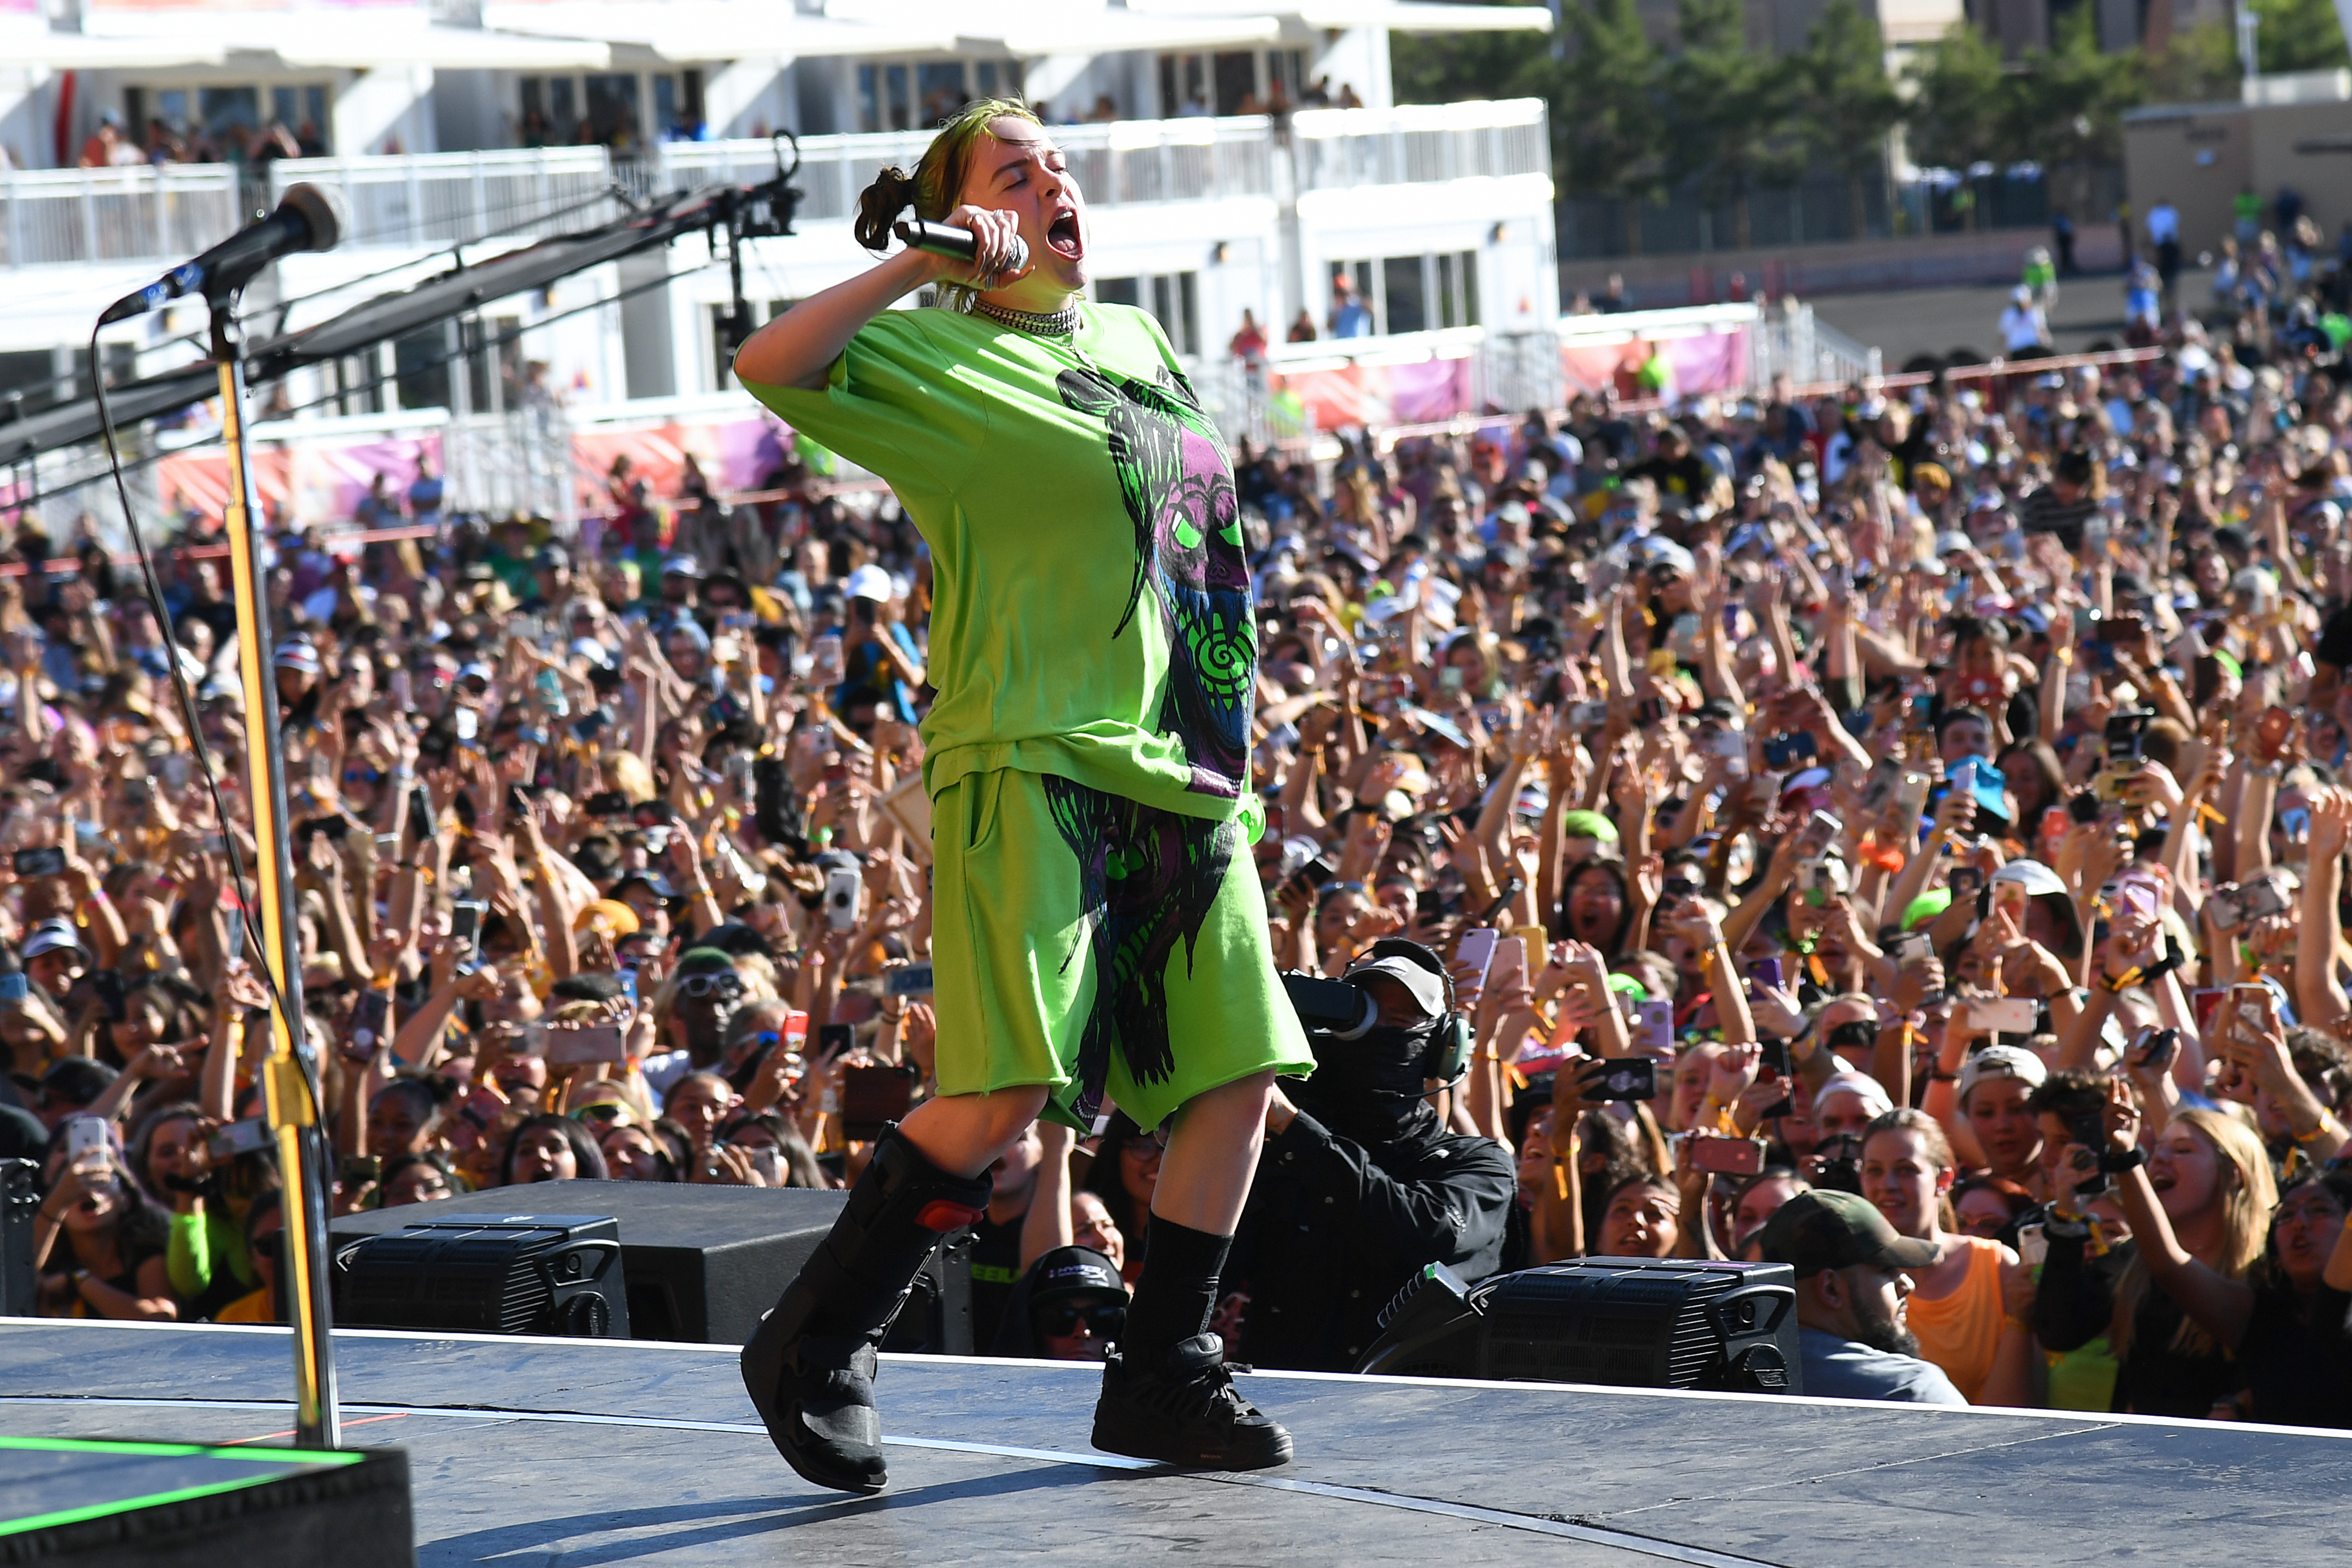 LAS VEGAS, NEVADA - SEPTEMBER 21: Billie Eilish performs onstage during the Daytime Stage at the 2019 iHeartRadio Music Festival held at the Las Vegas Festival Grounds on September 21, 2019 in Las Vegas, Nevada EDITORIAL USE ONLY. (Photo by Kevin Mazur/Getty Images for iHeartMedia